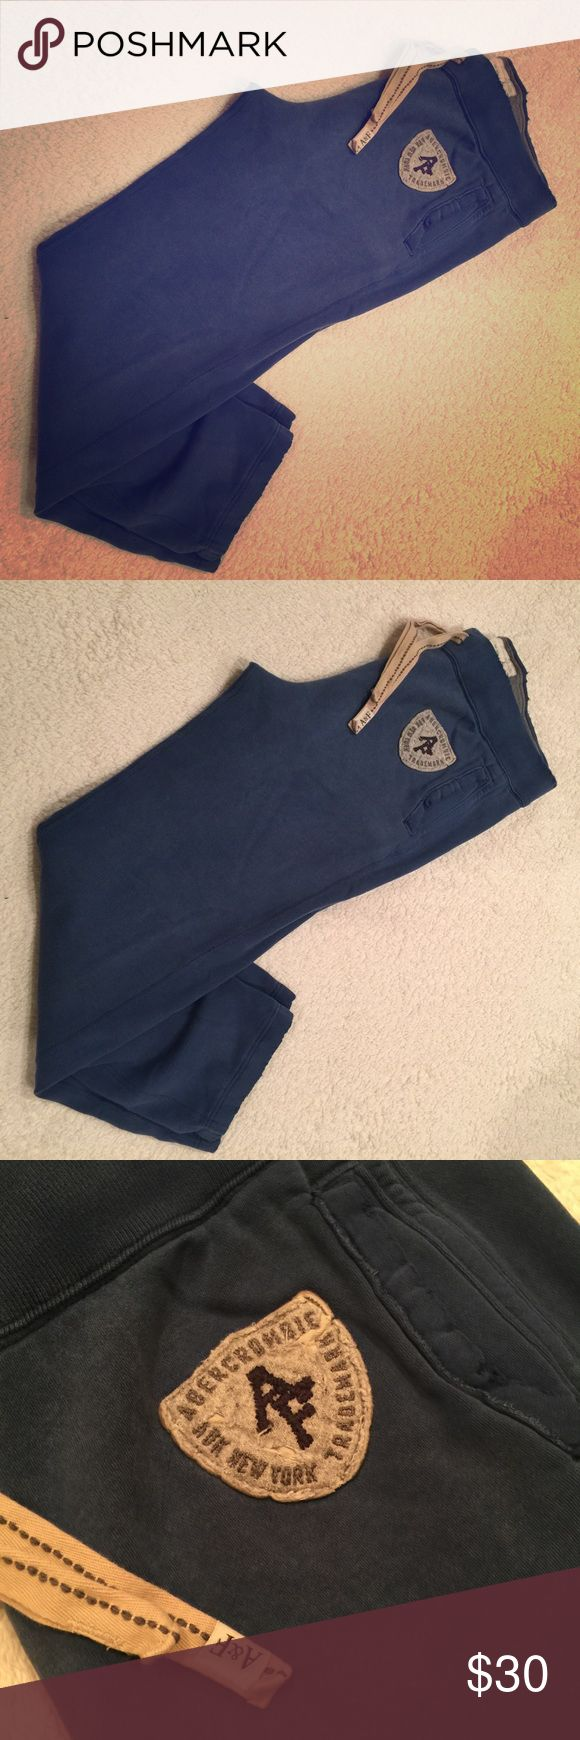 Abercrombie & Fitch Sweatpants Gently Used Abercrombie & Fitch Pants Sweatpants & Joggers